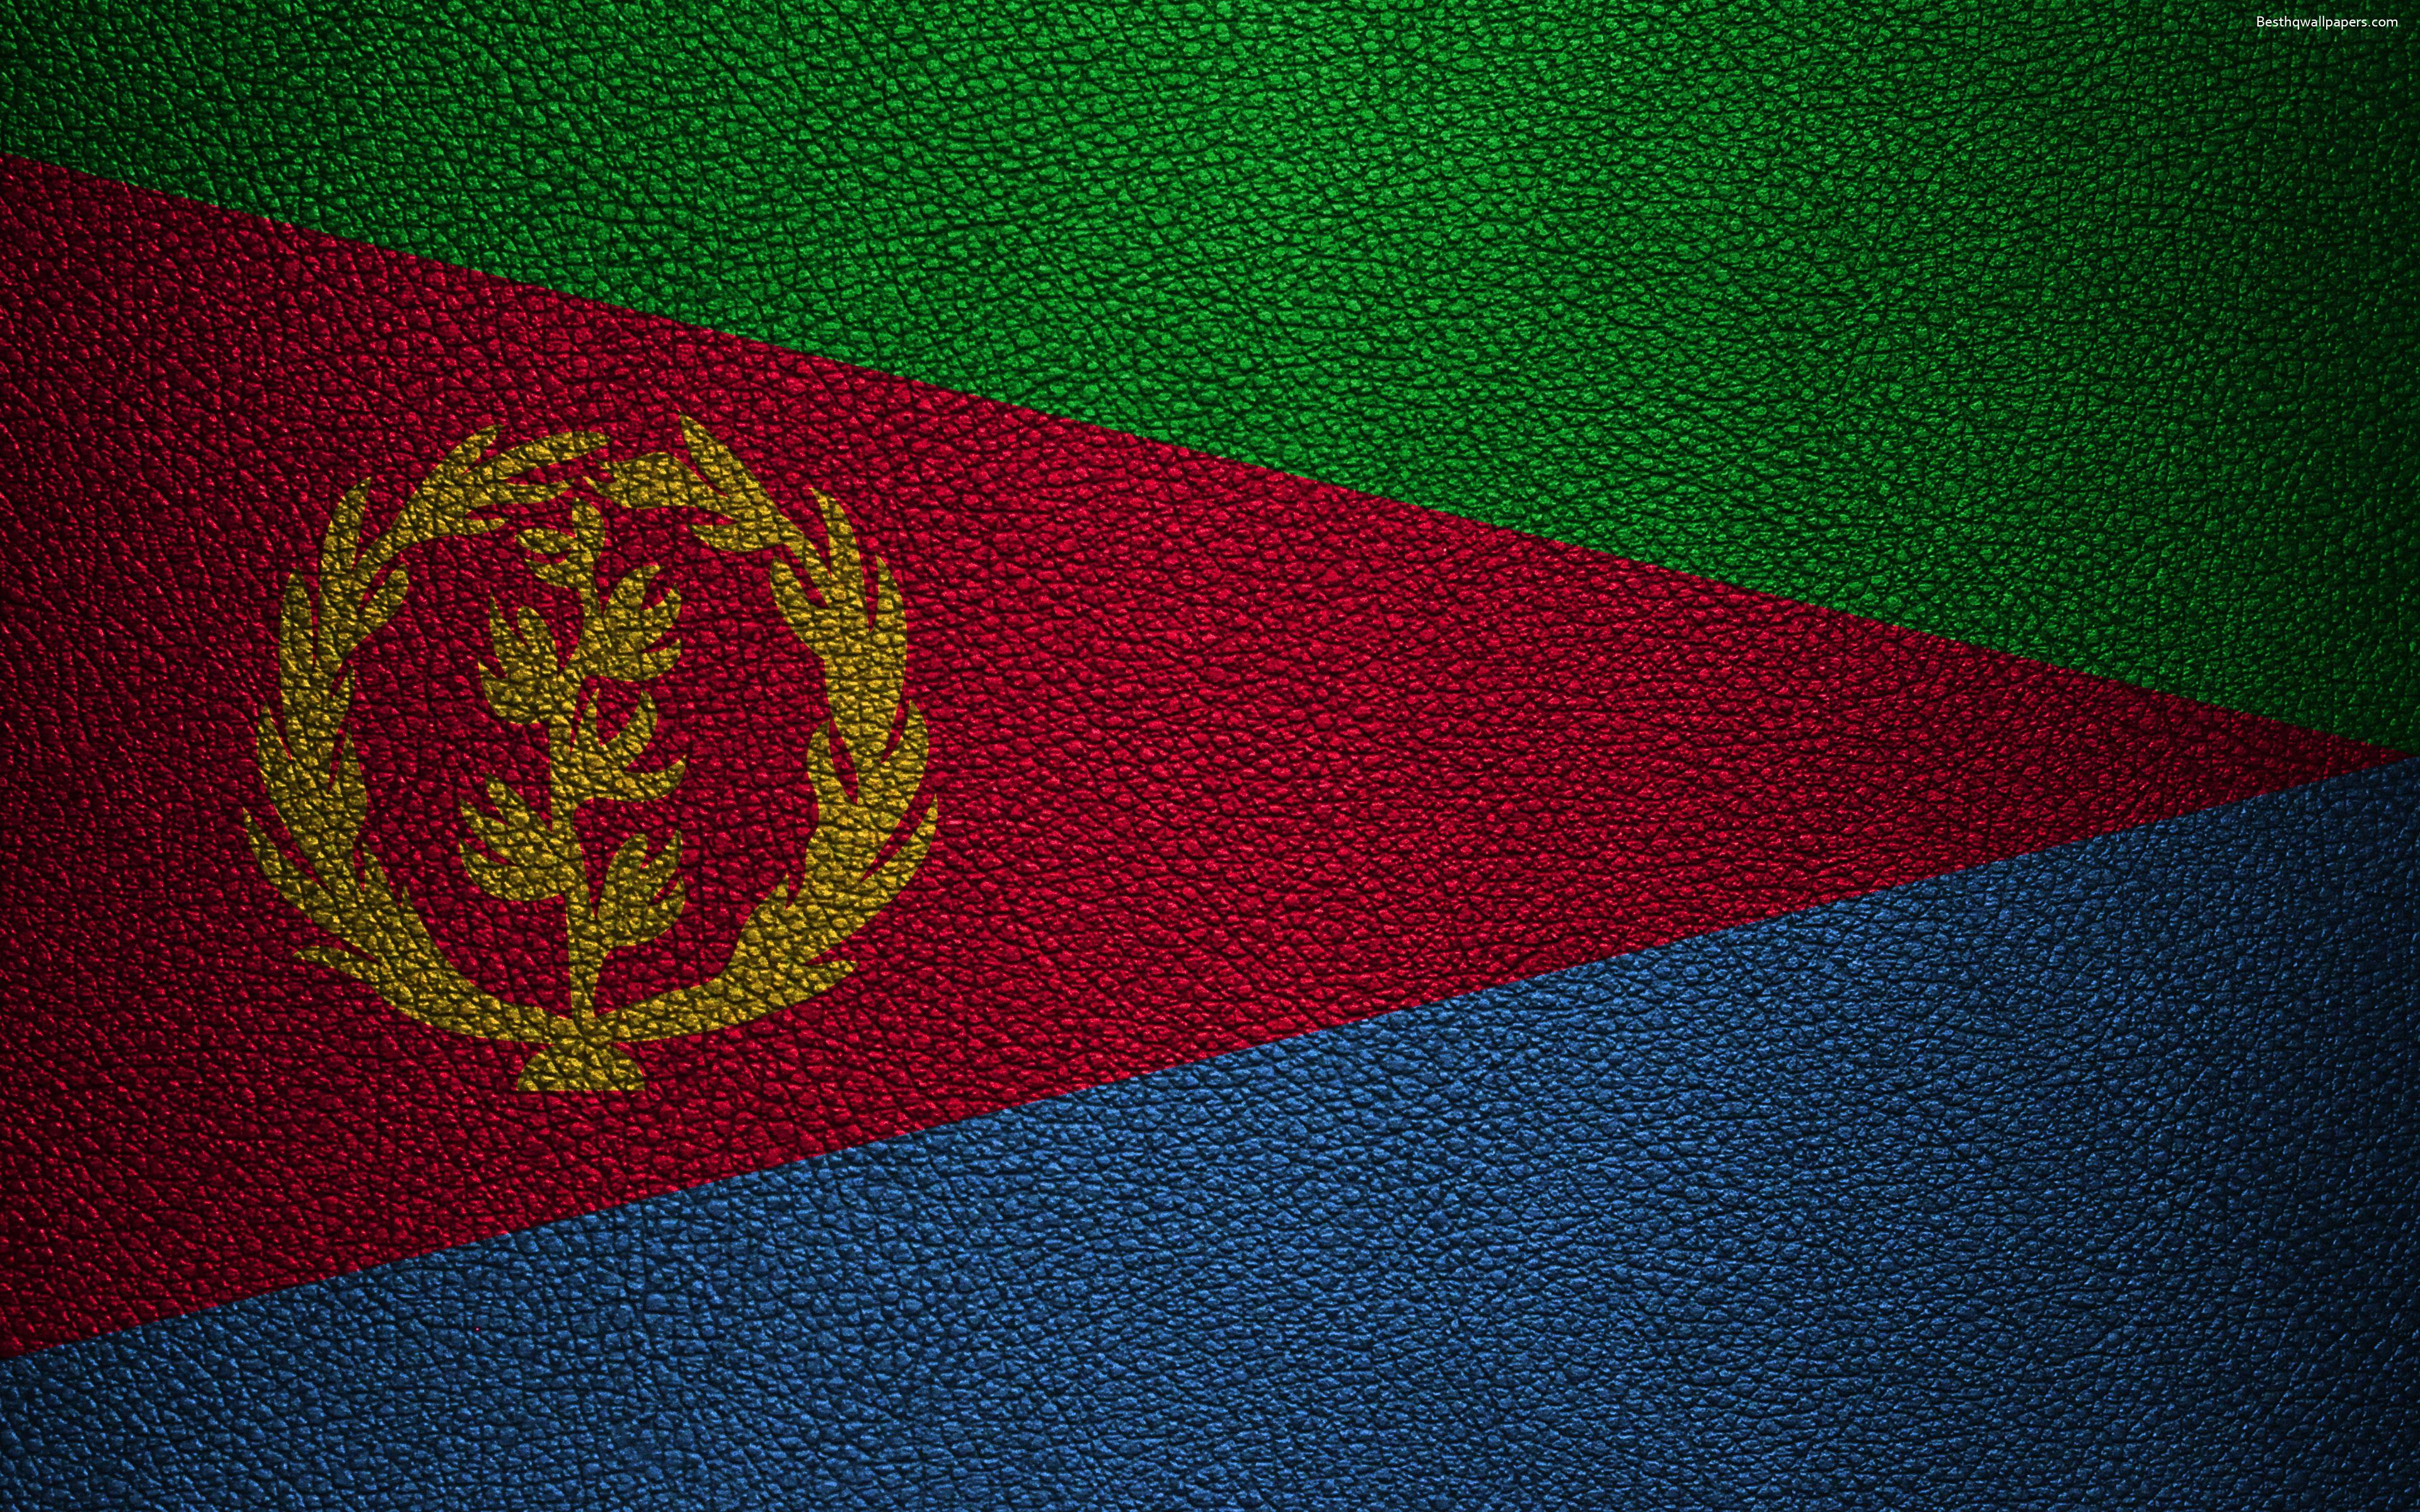 Download wallpapers Flag of Eritrea, Africa, 4K, leather texture